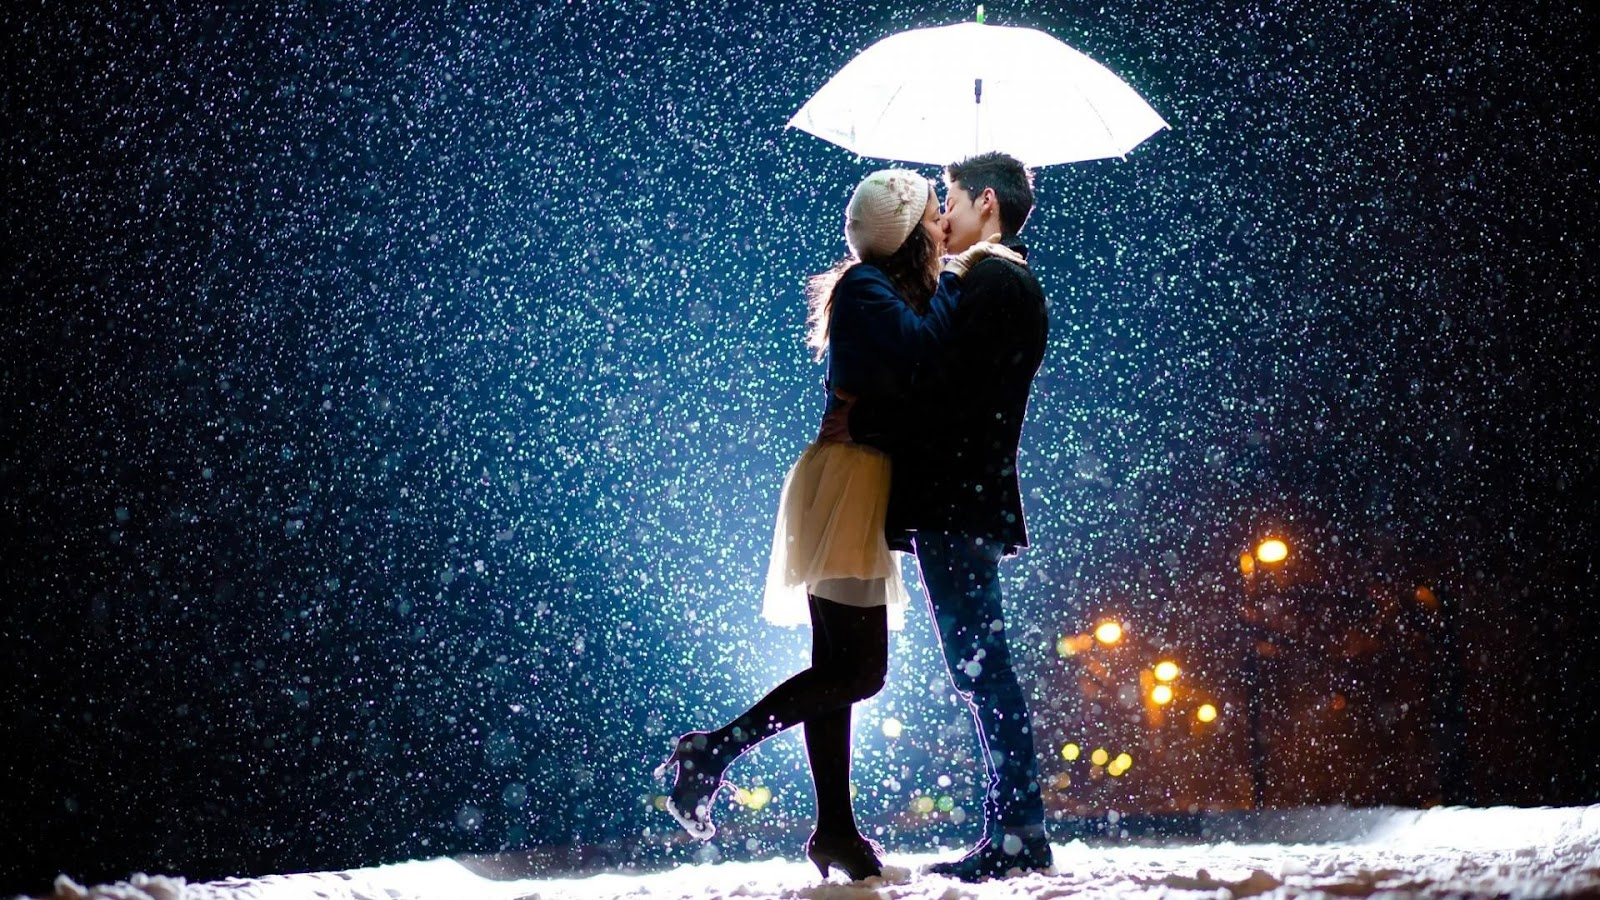 Hot Couple Kissing 1080P Hd Wallpapers  Images  Hd -8689